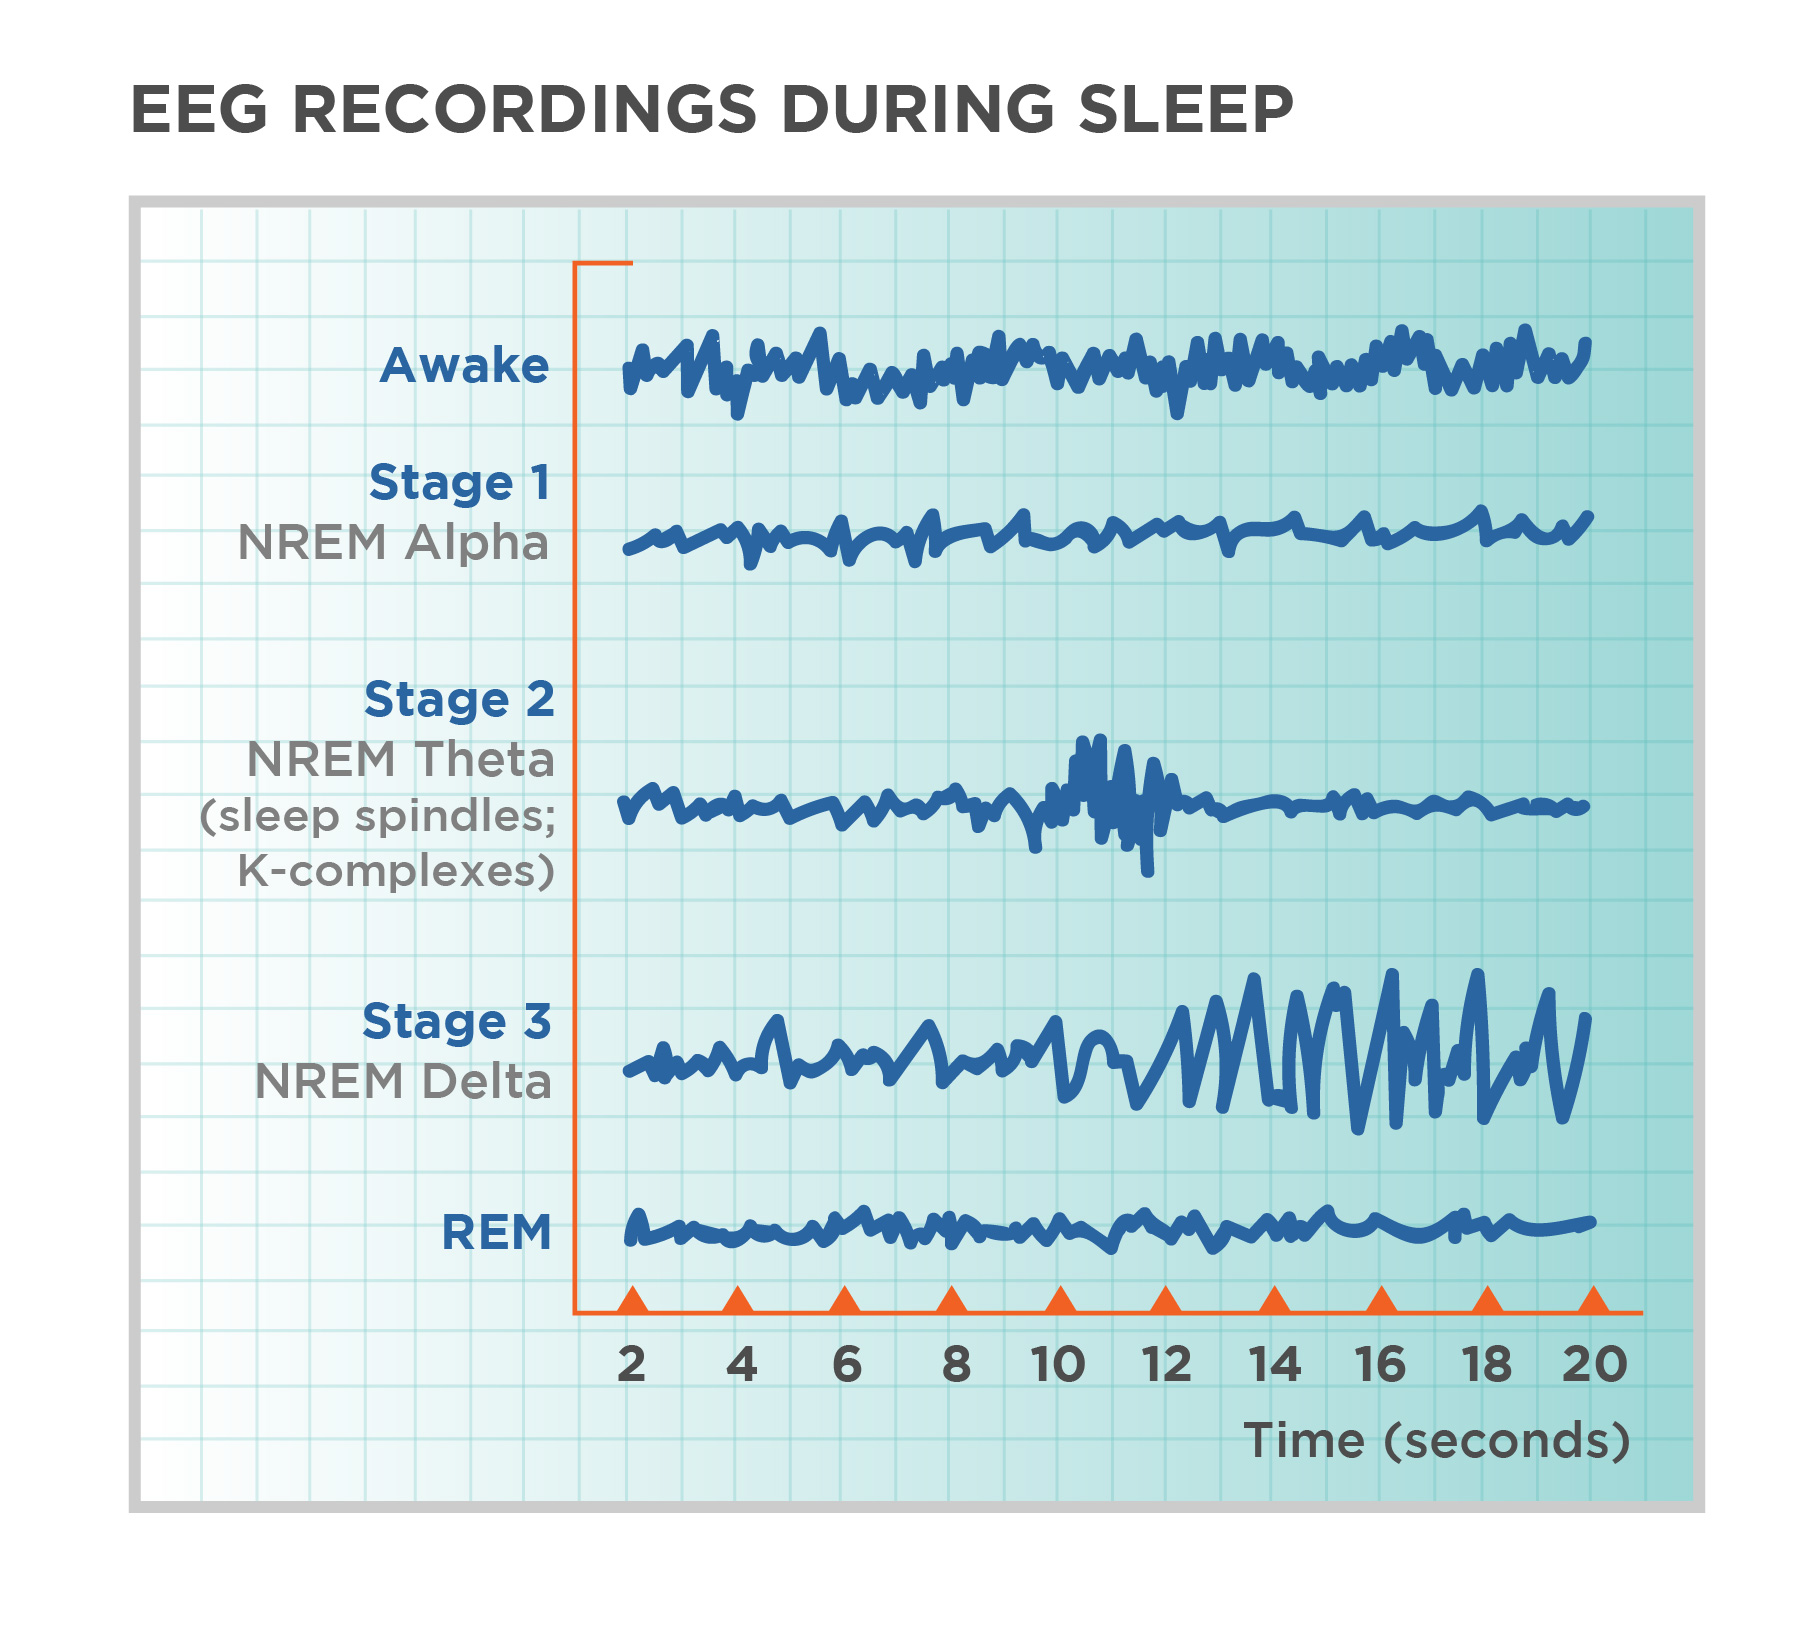 "A graph has a y-axis labeled ""EEG"" and an x-axis labeled ""time (seconds.) Plotted along the y-axis and moving upward are the stages of sleep. First is REM, followed by Stage 3 and 4 NREM Delta, Stage 2 NREM Theta (sleep spindles; K-complexes), Stage 1 NREM Alpha, and Awake. Charted on the x axis is Time in seconds from 2–20 in 2 second intervals. Each sleep stage has associated wavelengths of varying amplitude and frequency. Relative to the others, ""awake"" has a very close wavelength and a medium amplitude. Stage 1 is characterized by a generally uniform wavelength and a relatively low amplitude which doubles and quickly reverts to normal every 2 seconds. Stage 2 is comprised of a similar wavelength as stage 1. It introduces the K-complex from seconds 10 through 12 which is a short burst of doubled or tripled amplitude and decreased wavelength. Stages 3 shows a more uniform wave with gradually increasing amplitude. Finally, REM sleep looks much like stage 2 without the K-complex."